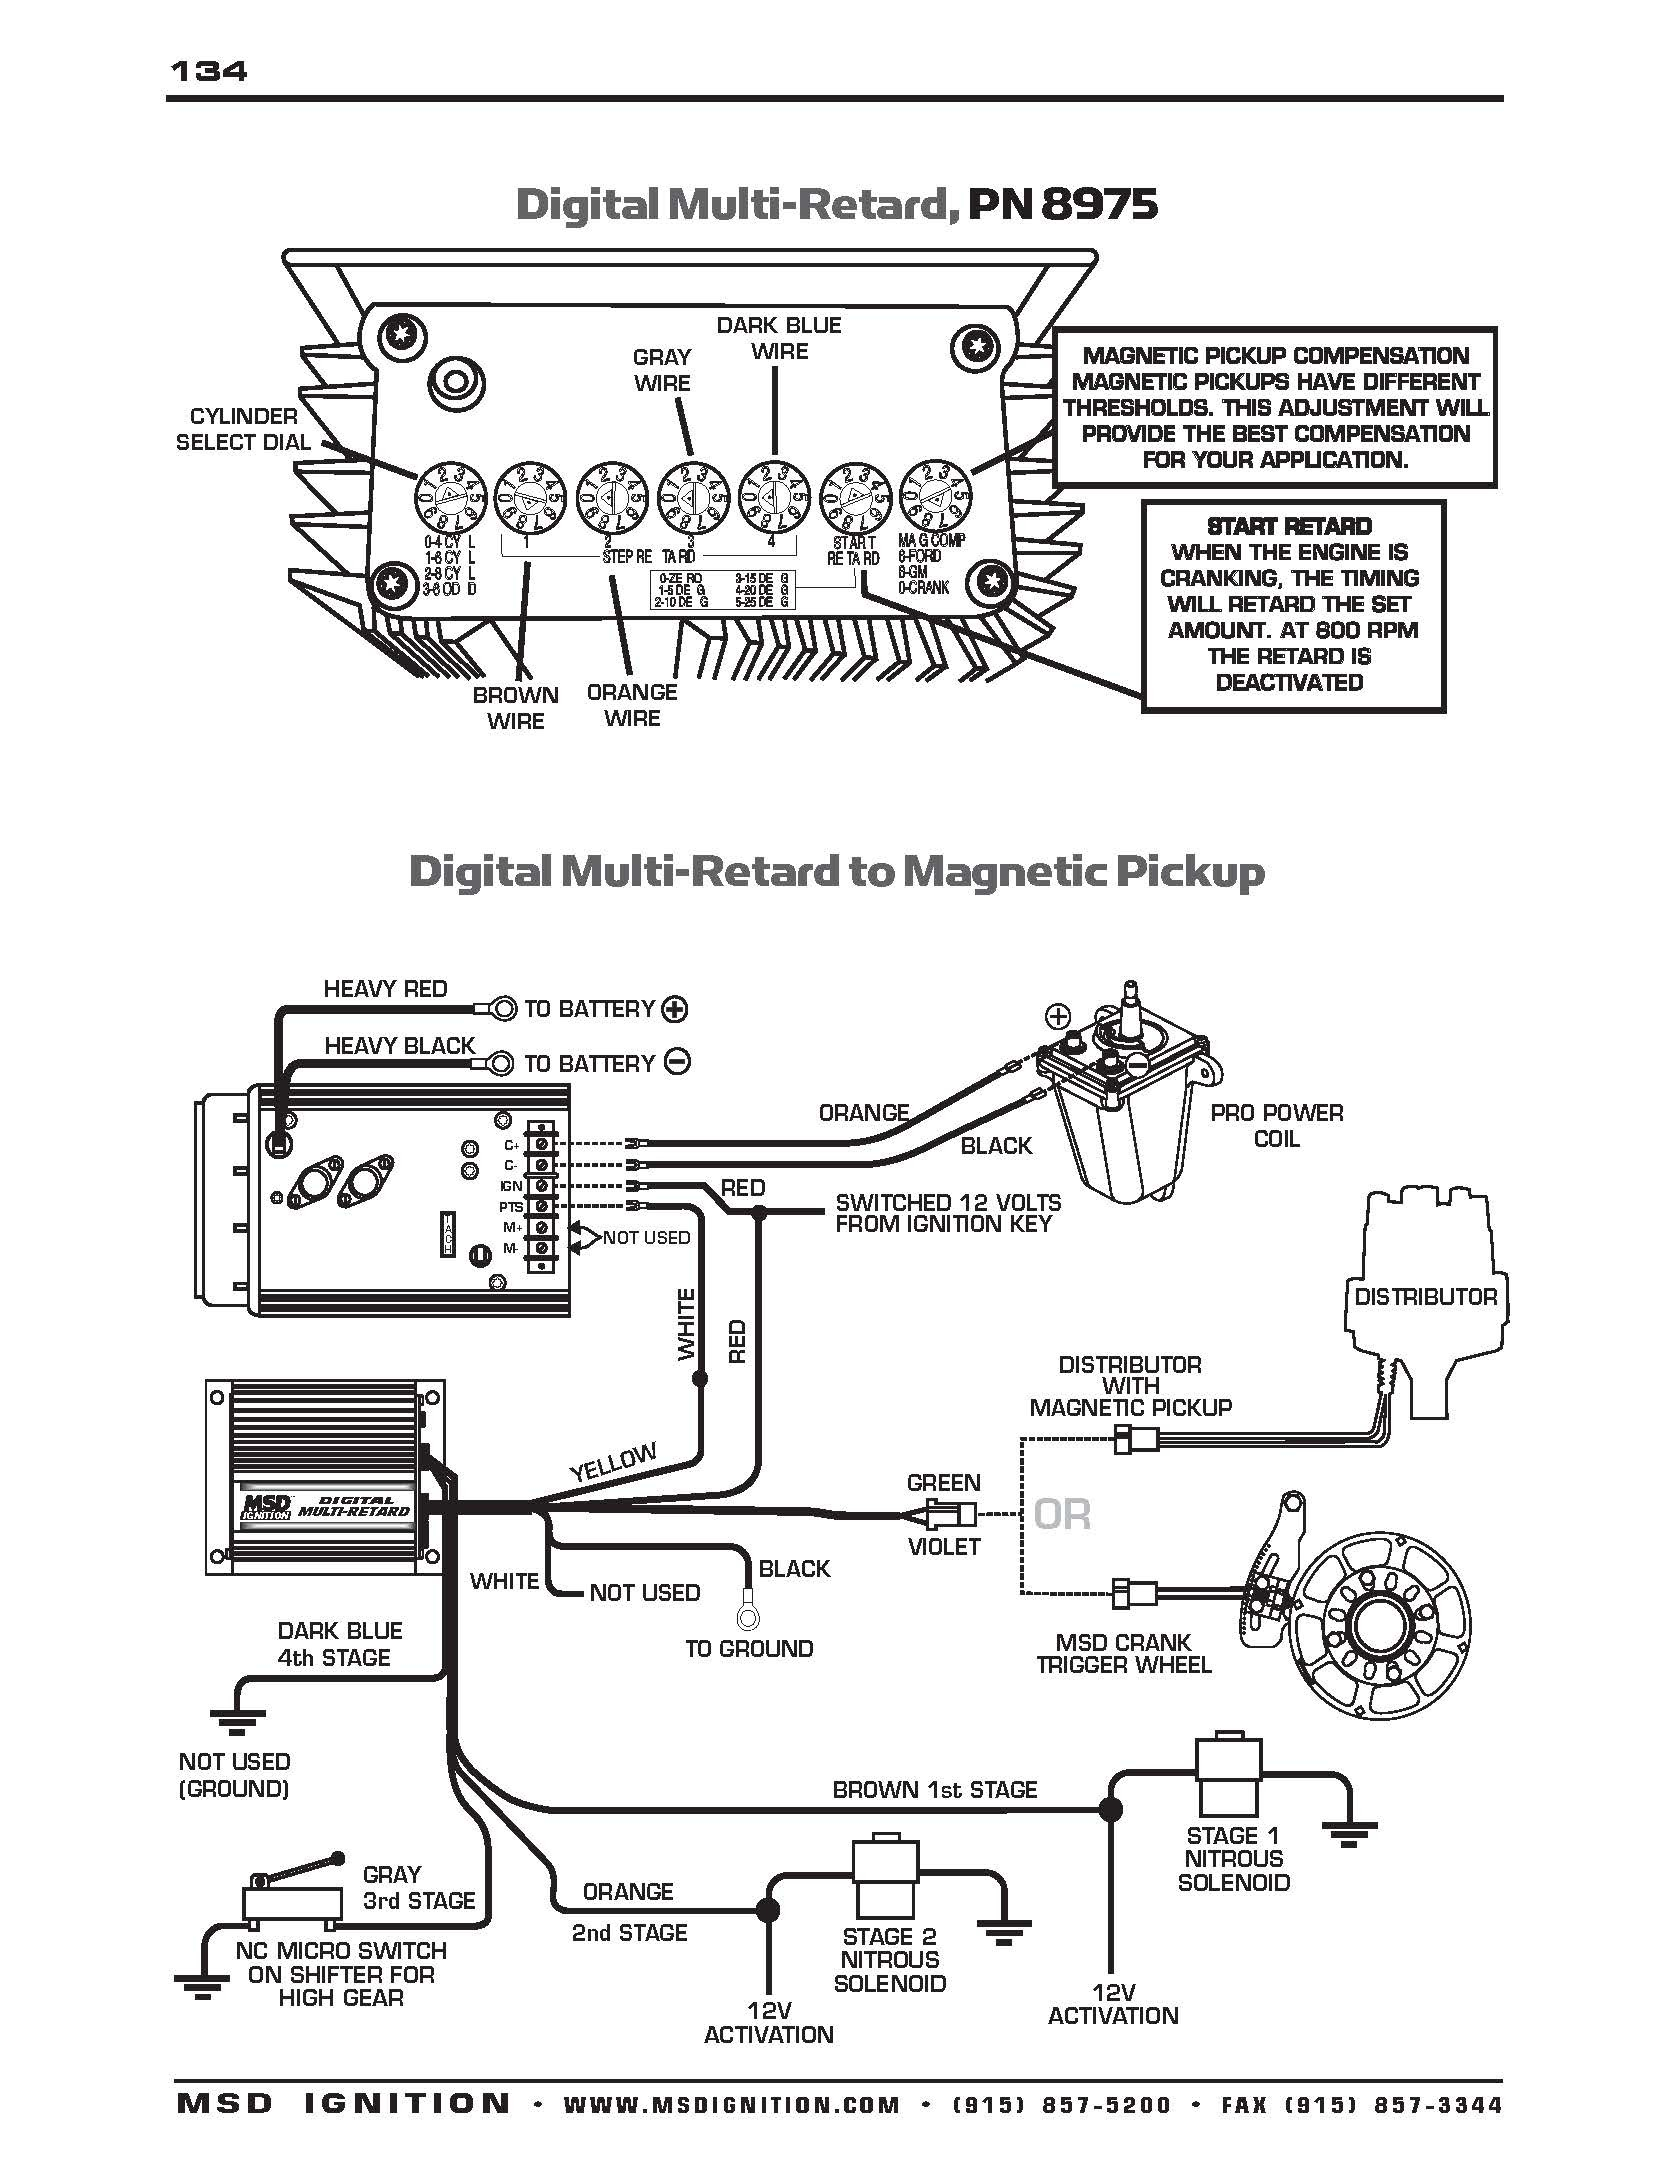 Autometer Pyrometer Wiring Diagram Wiring An Msd with Diagram for 6al Distributor Wiring Diagram Of Autometer Pyrometer Wiring Diagram